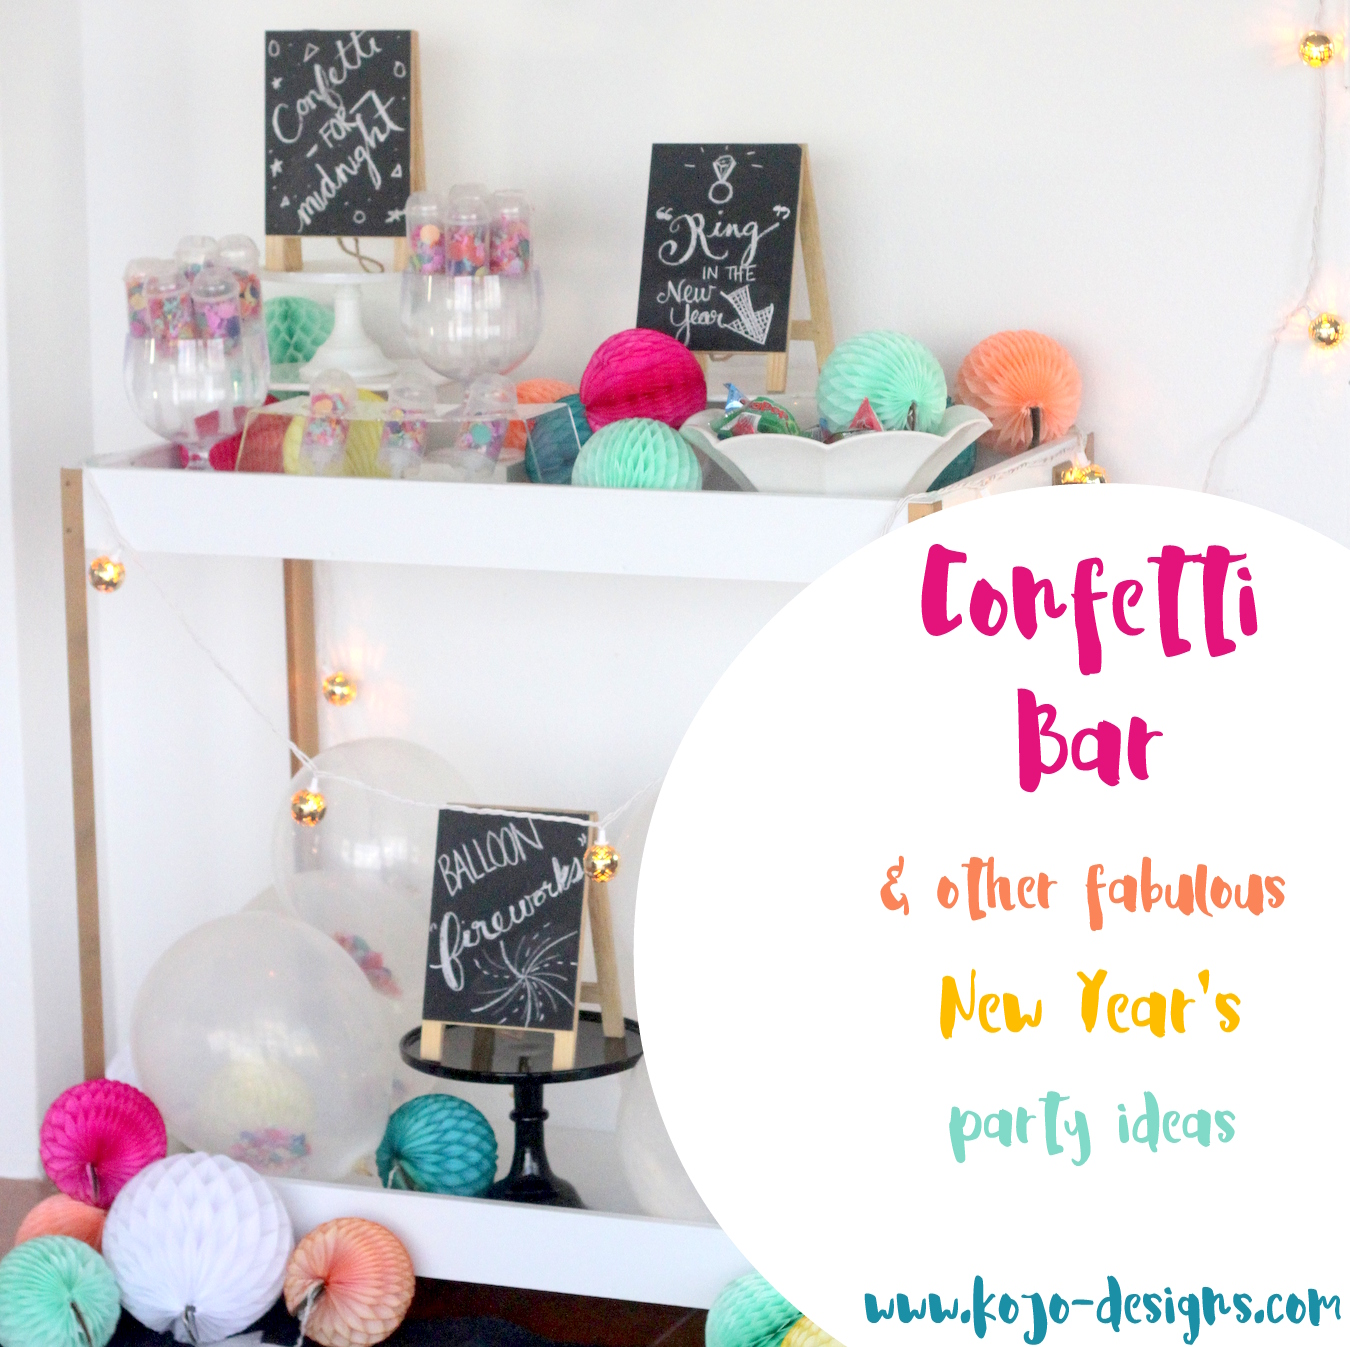 a confetti bar (and other new year's party ideas!)